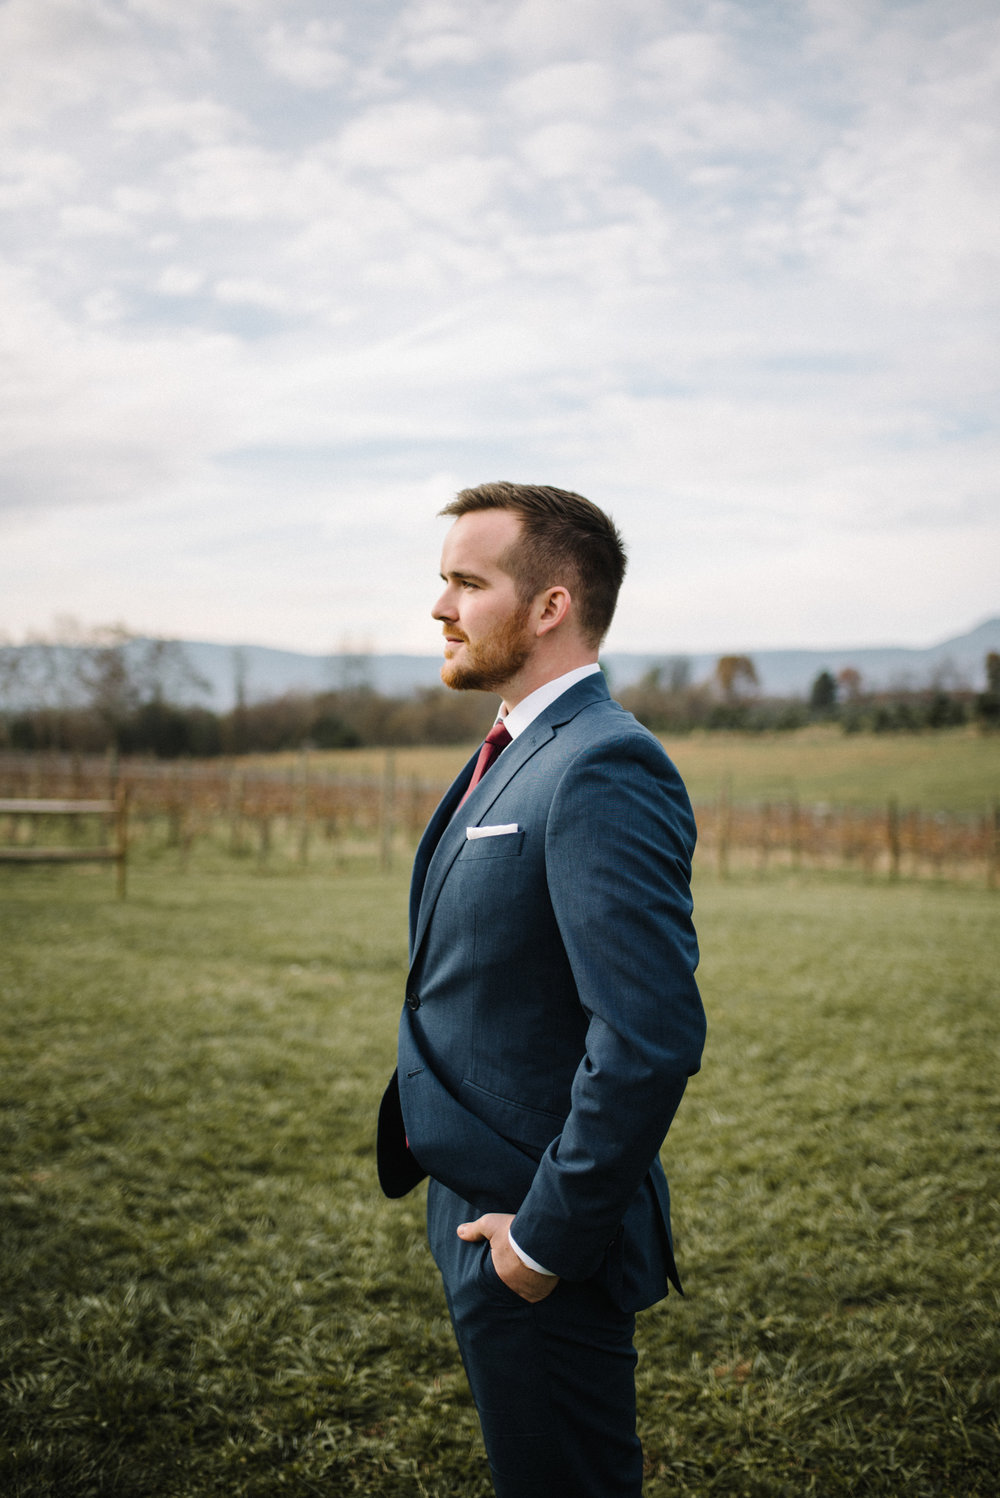 Alyssa and Jesse Winter Vineyard Wedding Luray Virginia Shenandoah Valley Faithbrooke_40.JPG